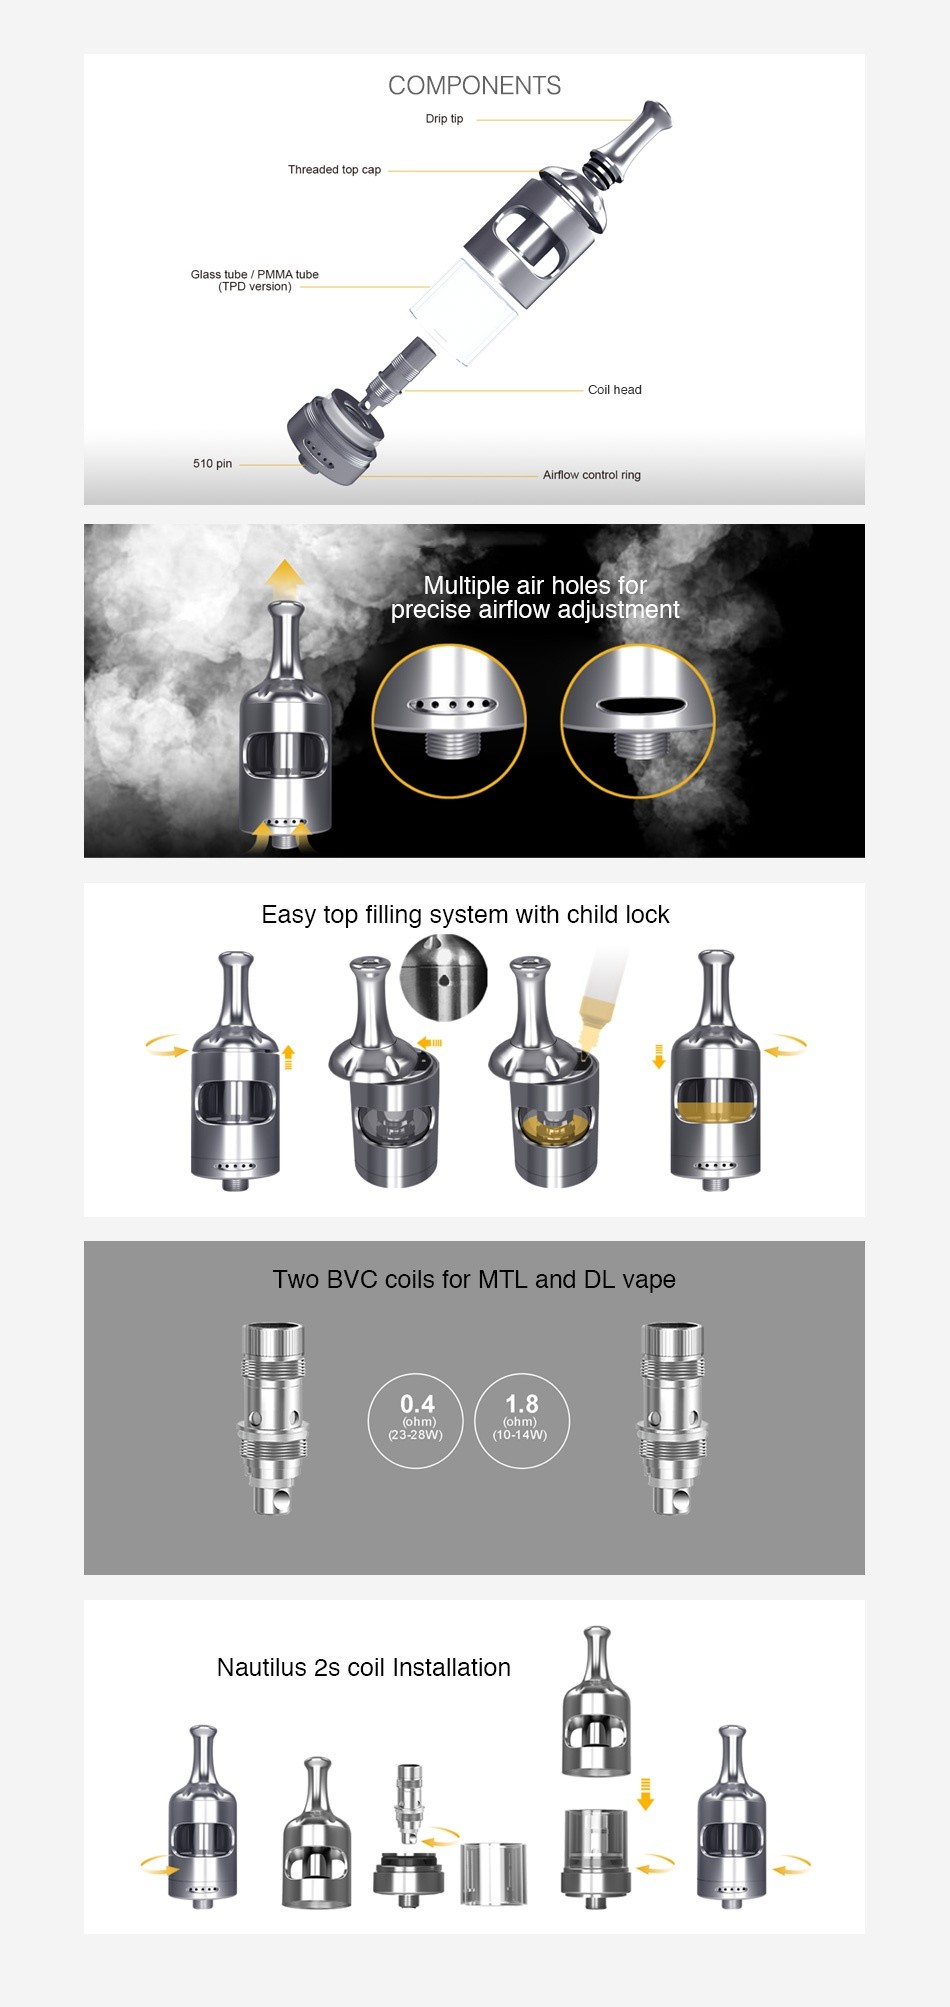 Aspire Nautilus 2S Tank 2ml/2.6ml COMPONENTS Drip ti Threaded top cap Glass tube  PMmA tube Coil head 510 pin Airflow control ring Multiple air holes for precise airflow adjustment Easy top filling system with child lock TWo BVC coils for MTL and DL vape 0 4 1 8 2328W   10 14W H Nautilus 2s coil installation     1